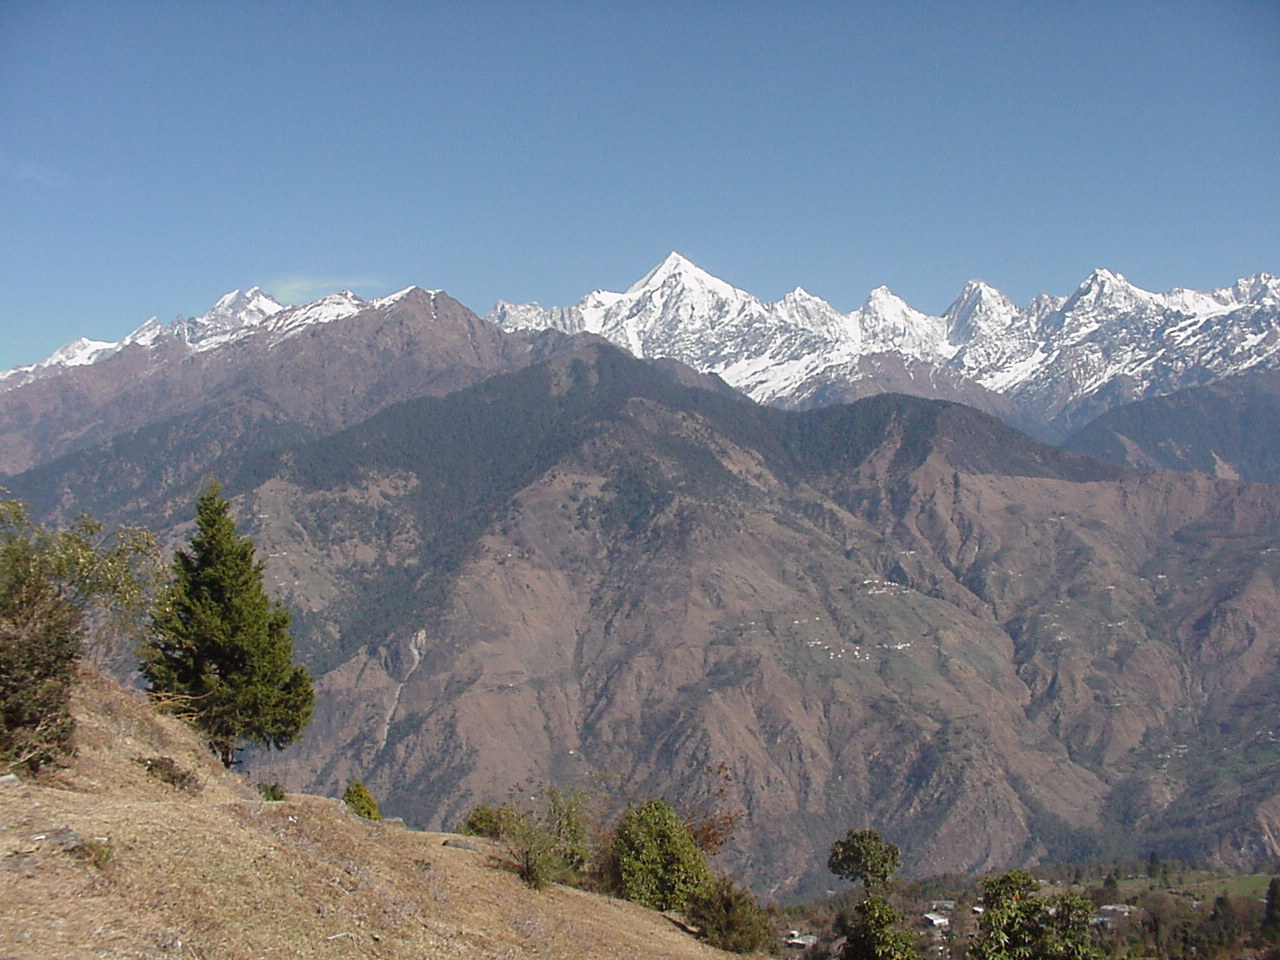 view of Pancholi mountain from MUNSYARI SPOT